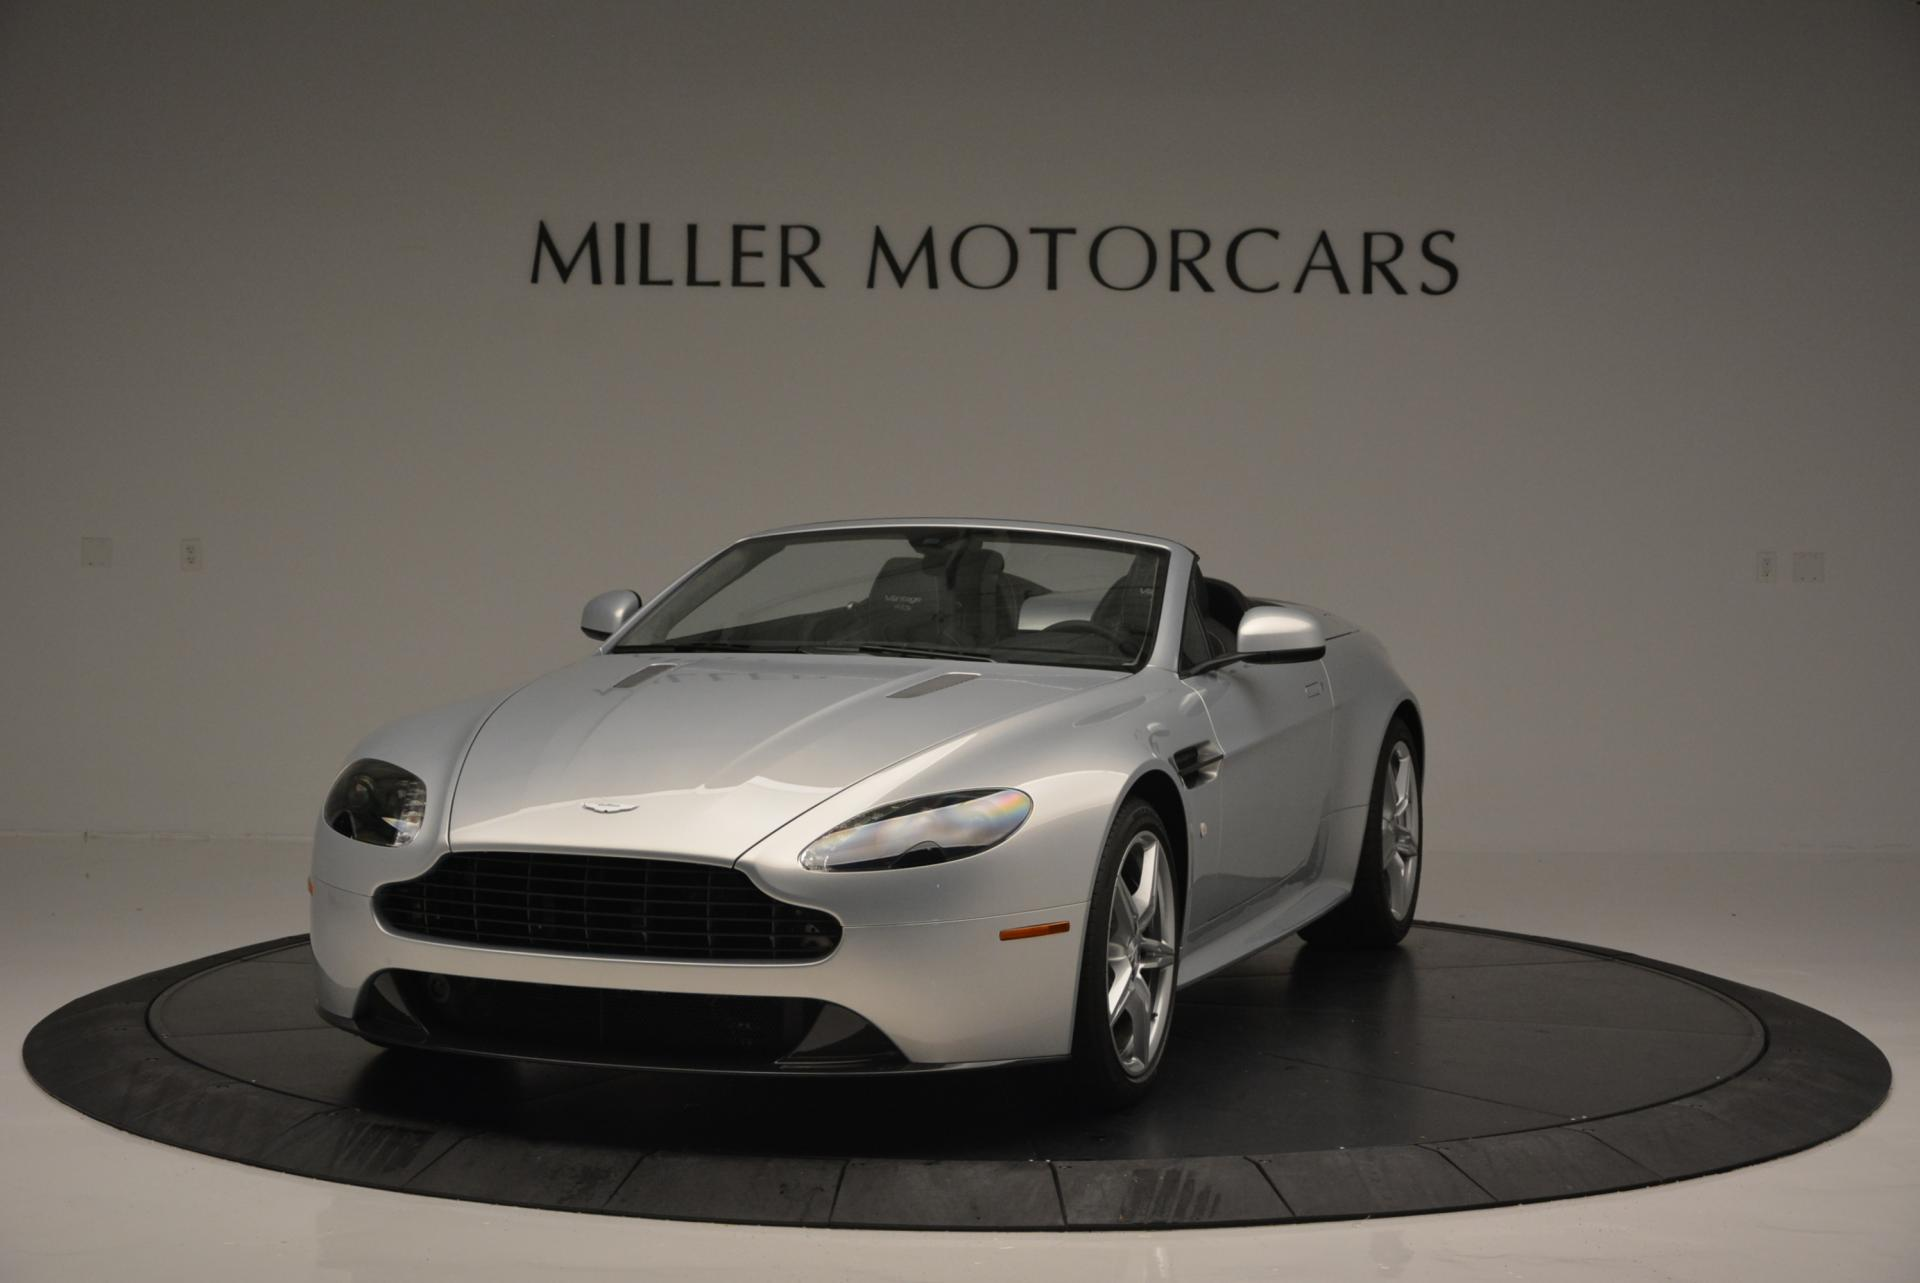 New 2016 Aston Martin V8 Vantage GTS Roadster for sale Sold at Maserati of Greenwich in Greenwich CT 06830 1